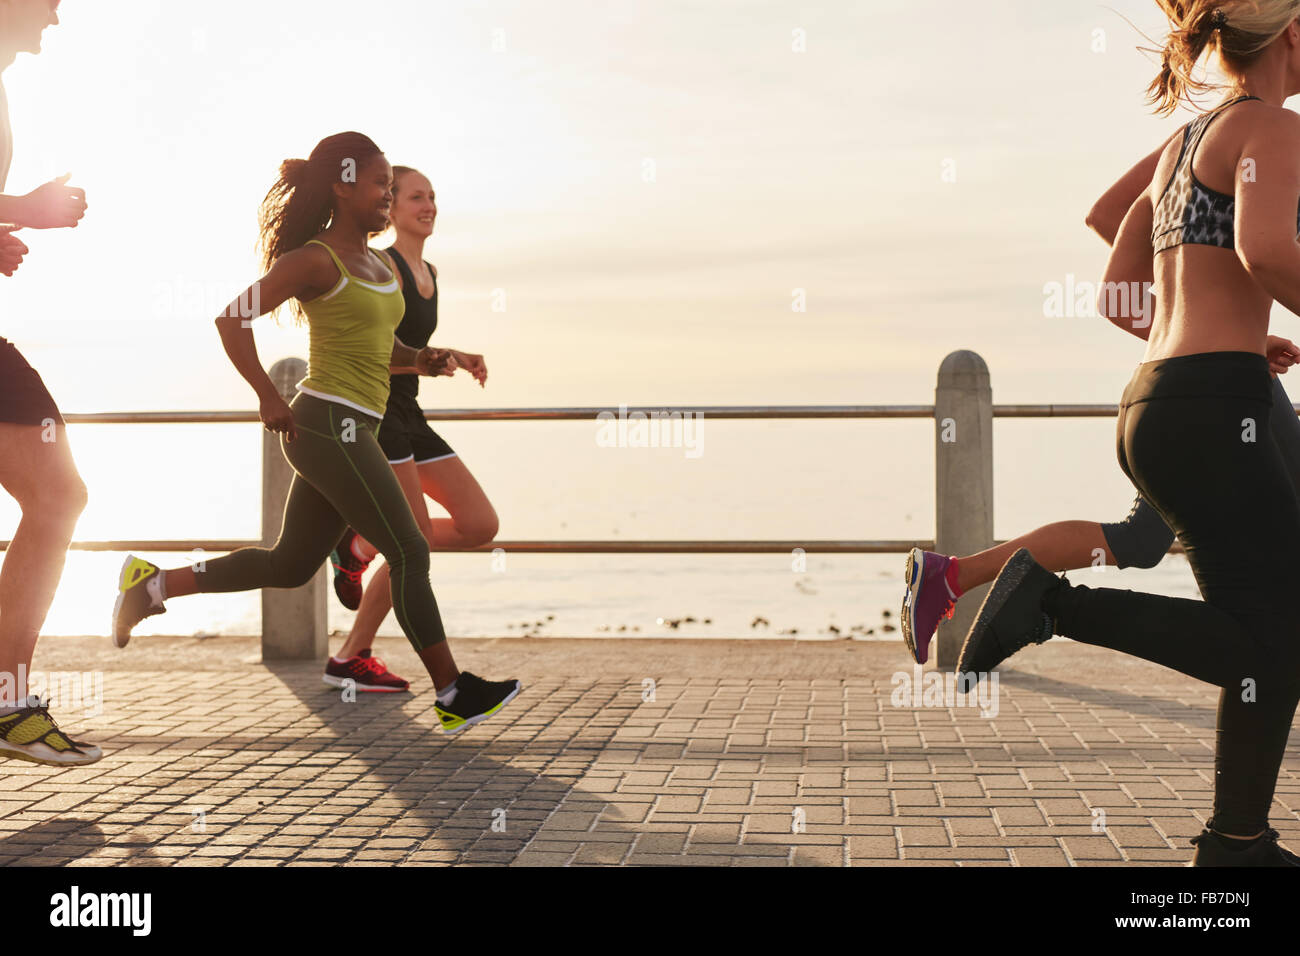 Young woman running with friends on seaside promenade at the sunset. Fit young people doing running workout outdoors - Stock Image